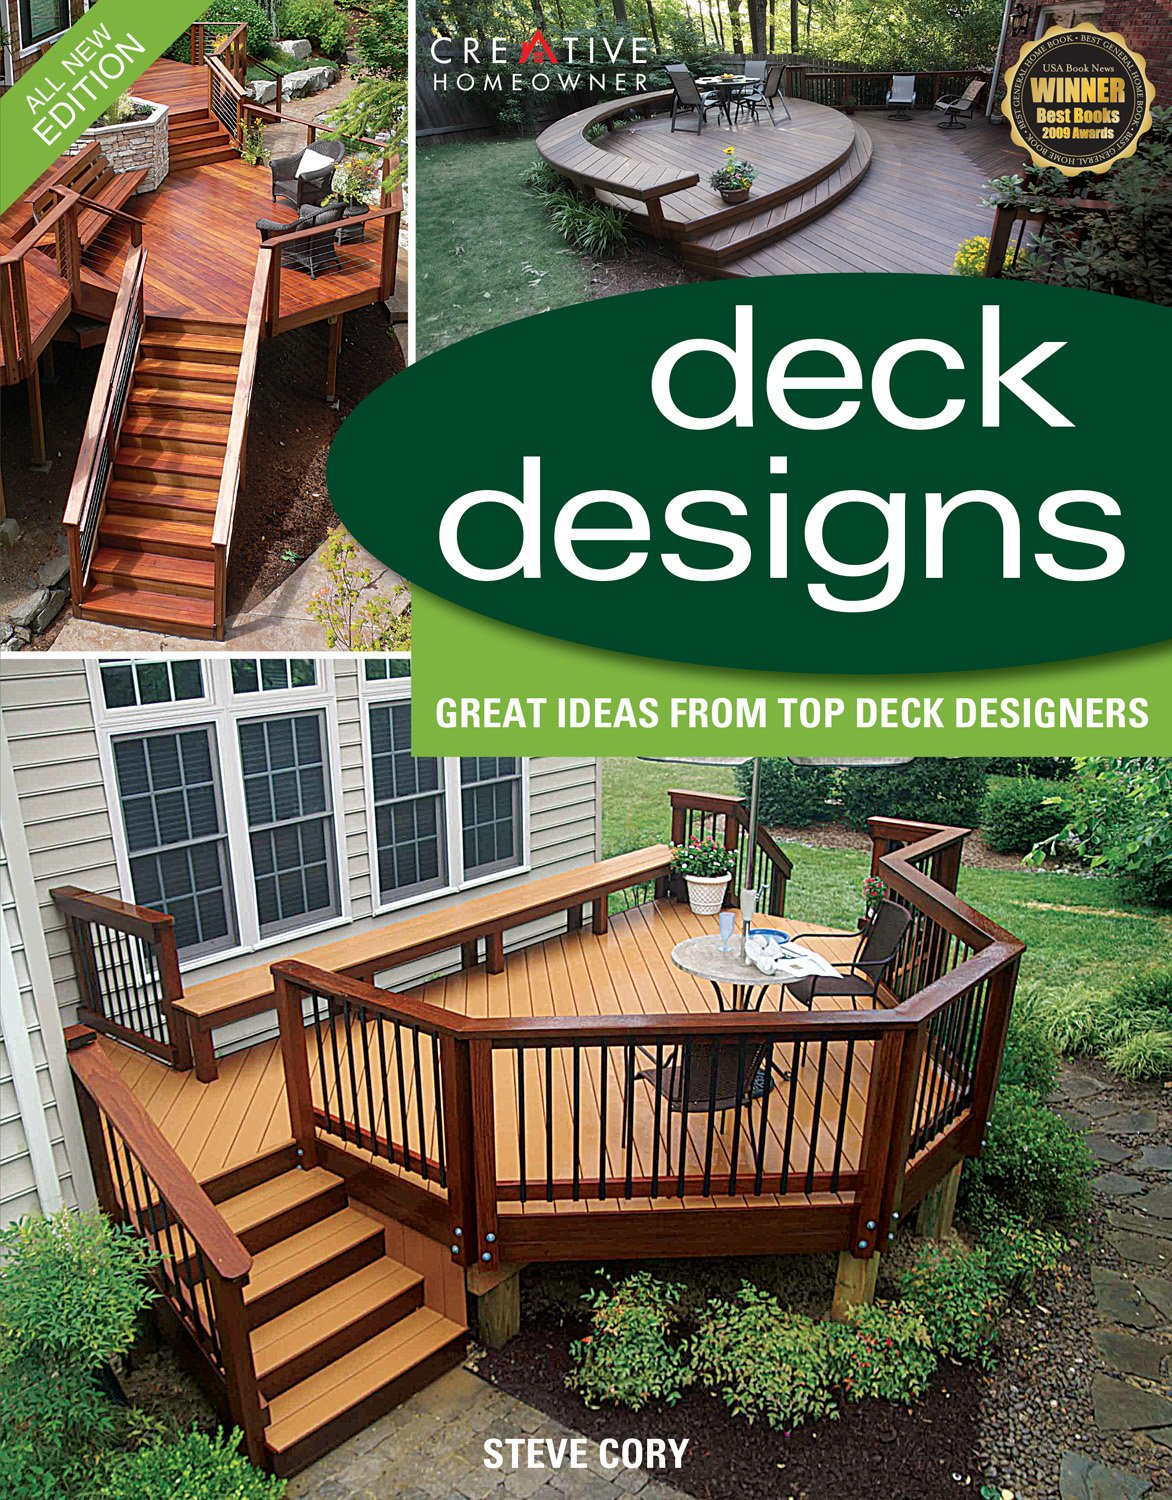 Image result for deck designs book